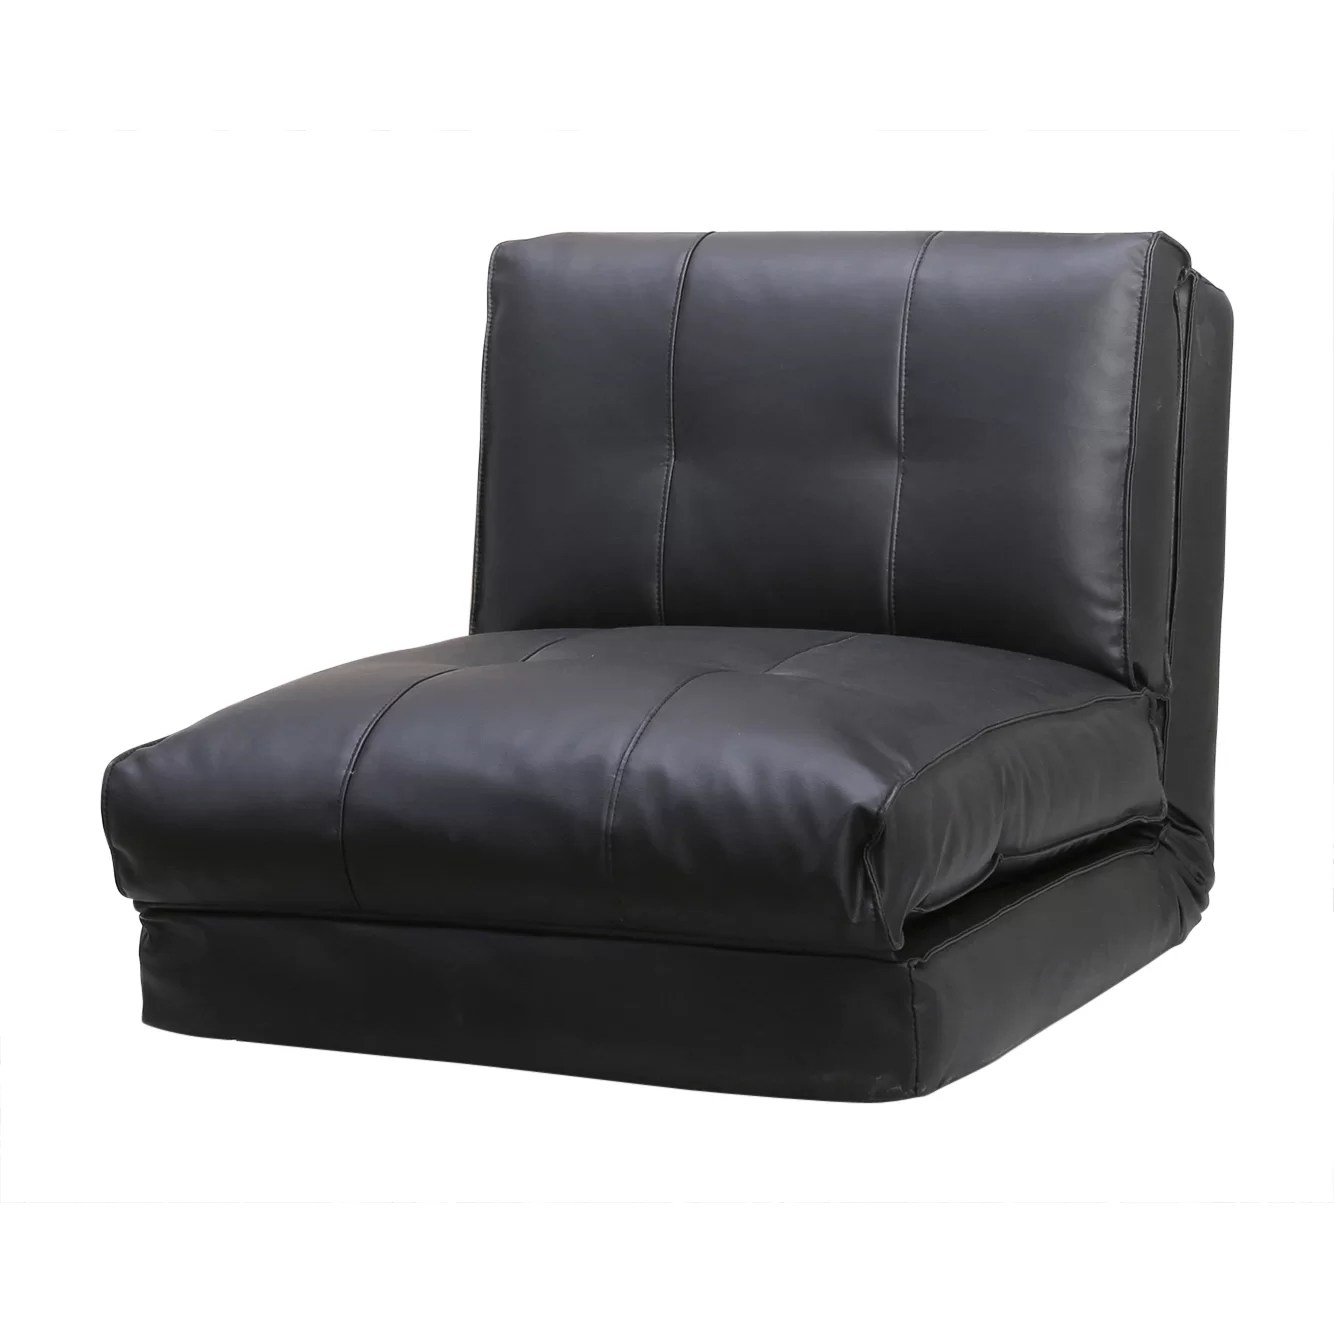 Convertible Chair Sleeper Latitude Run Balmoral Single Sleeper Convertible Chair